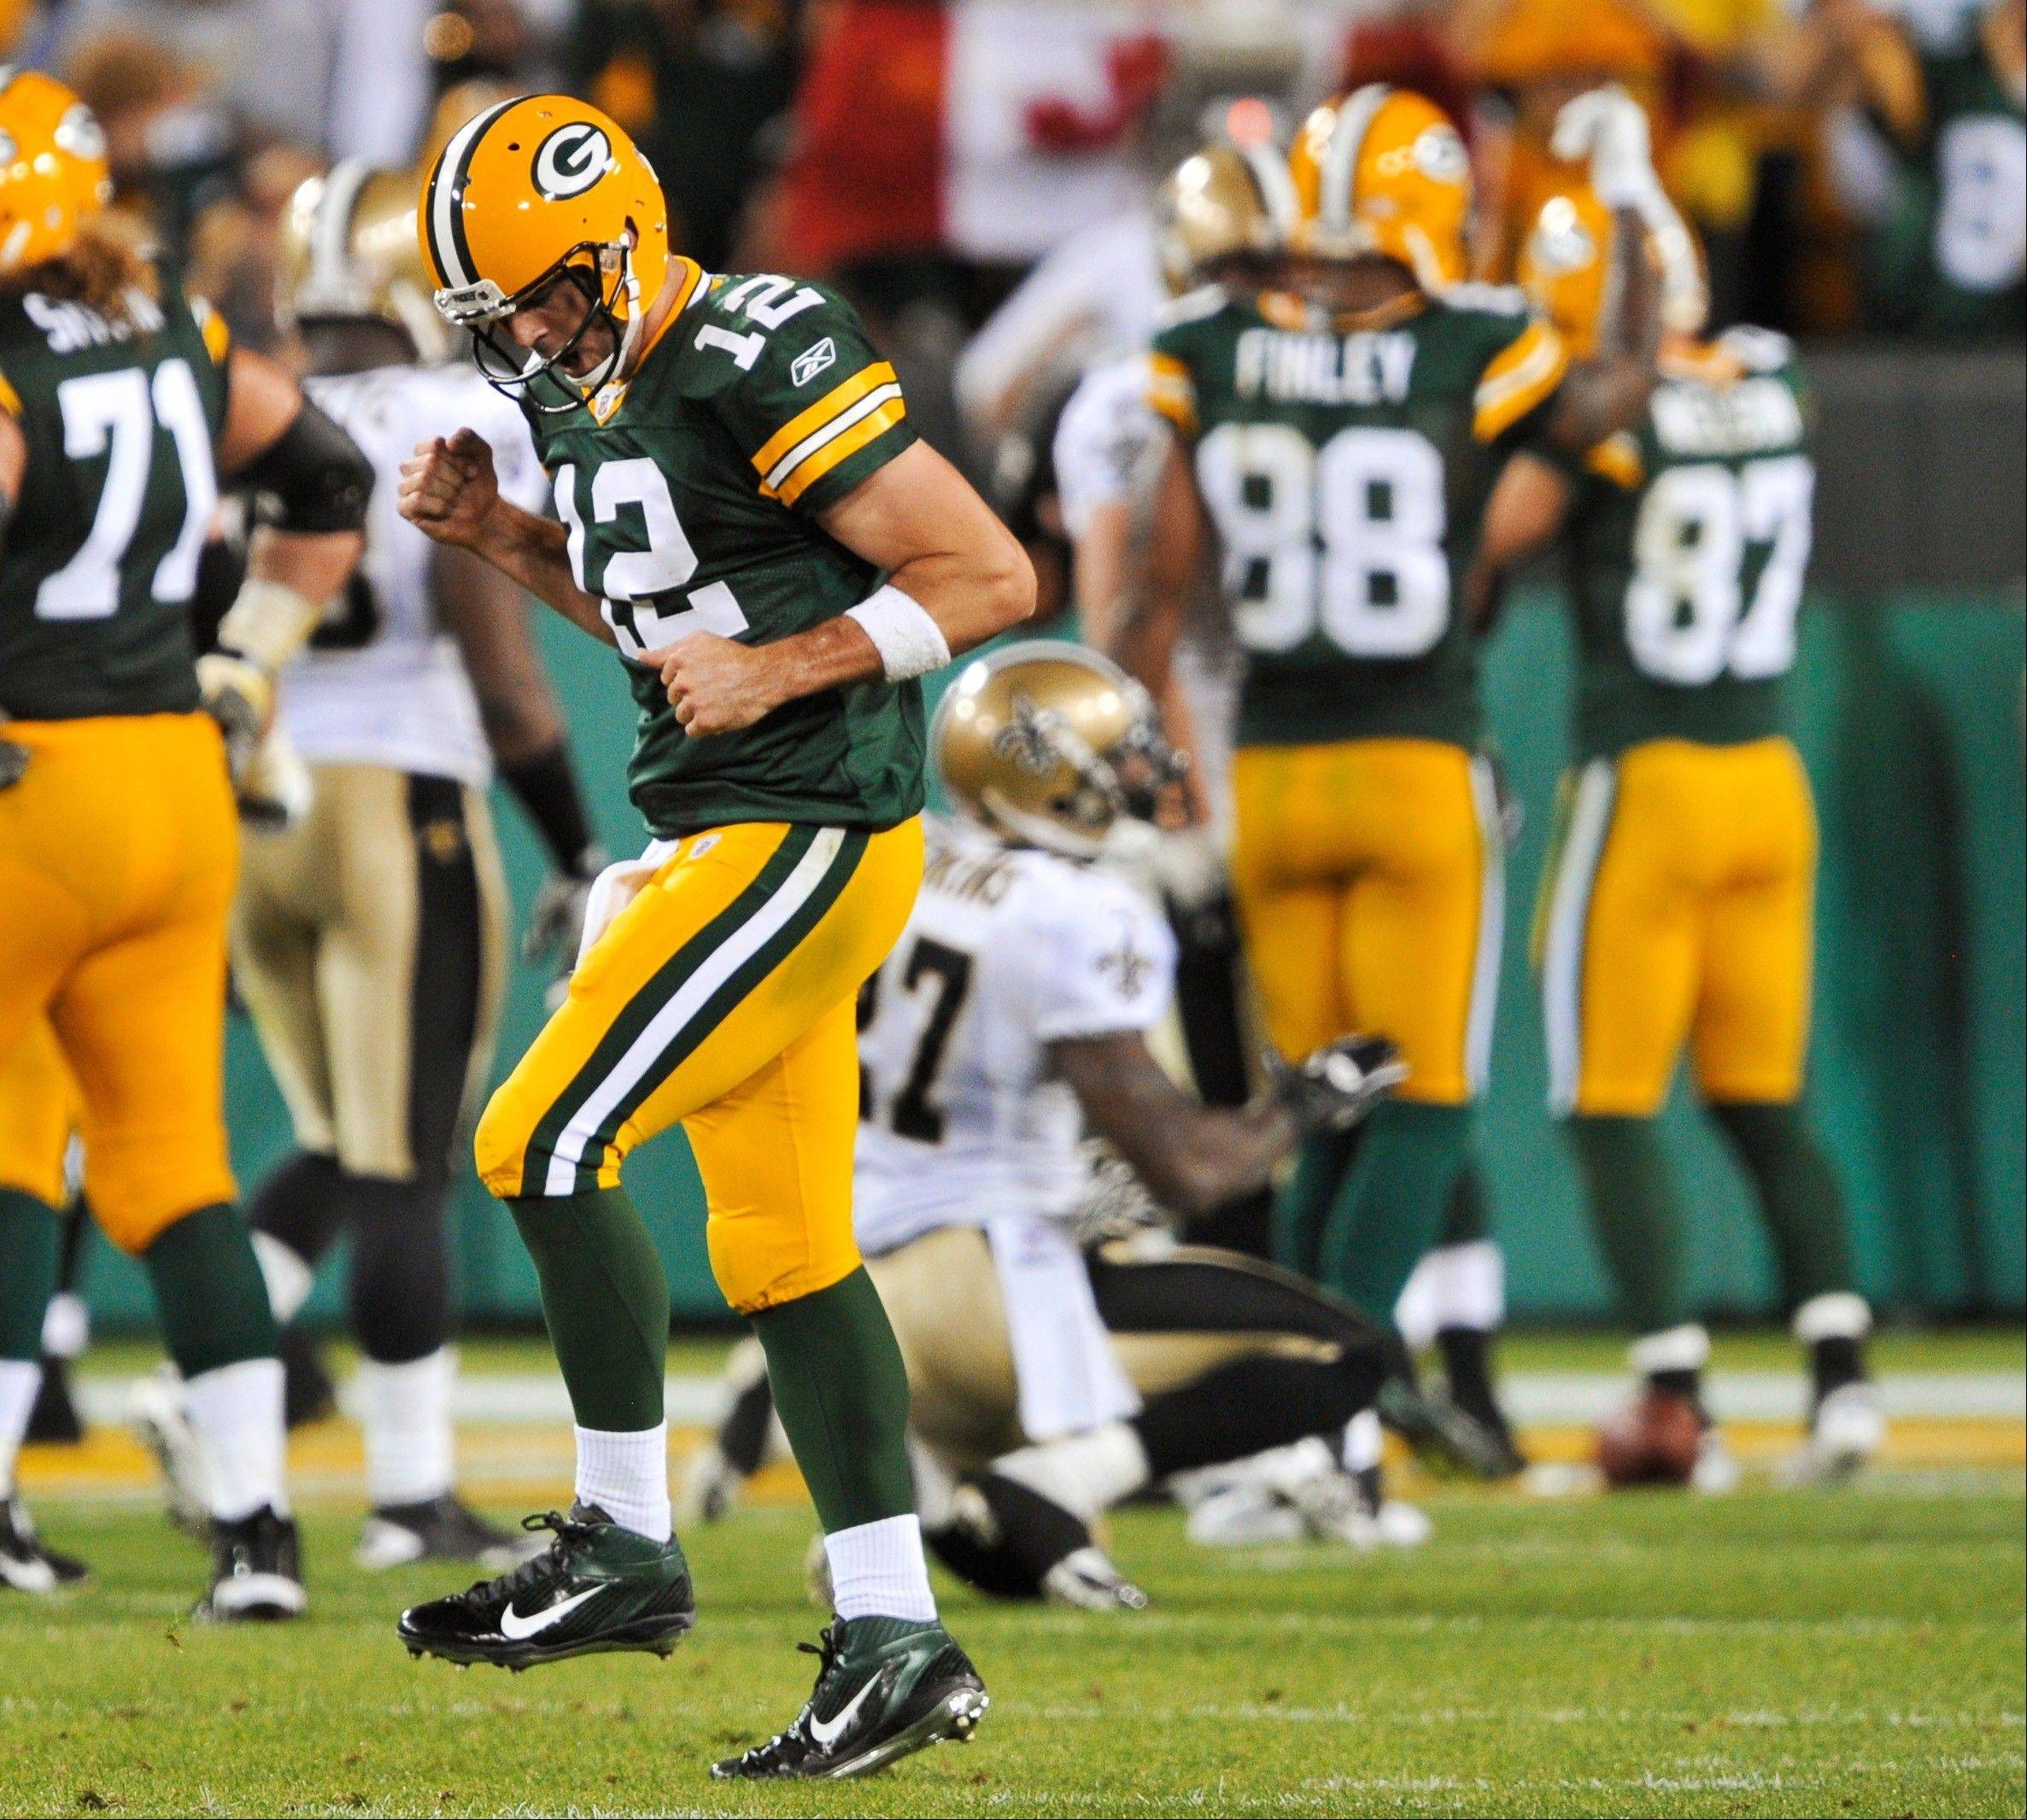 Green Bay Packers' Aaron Rodgers reacts after James Starks ran for a touchdown during the first half Thursday night.